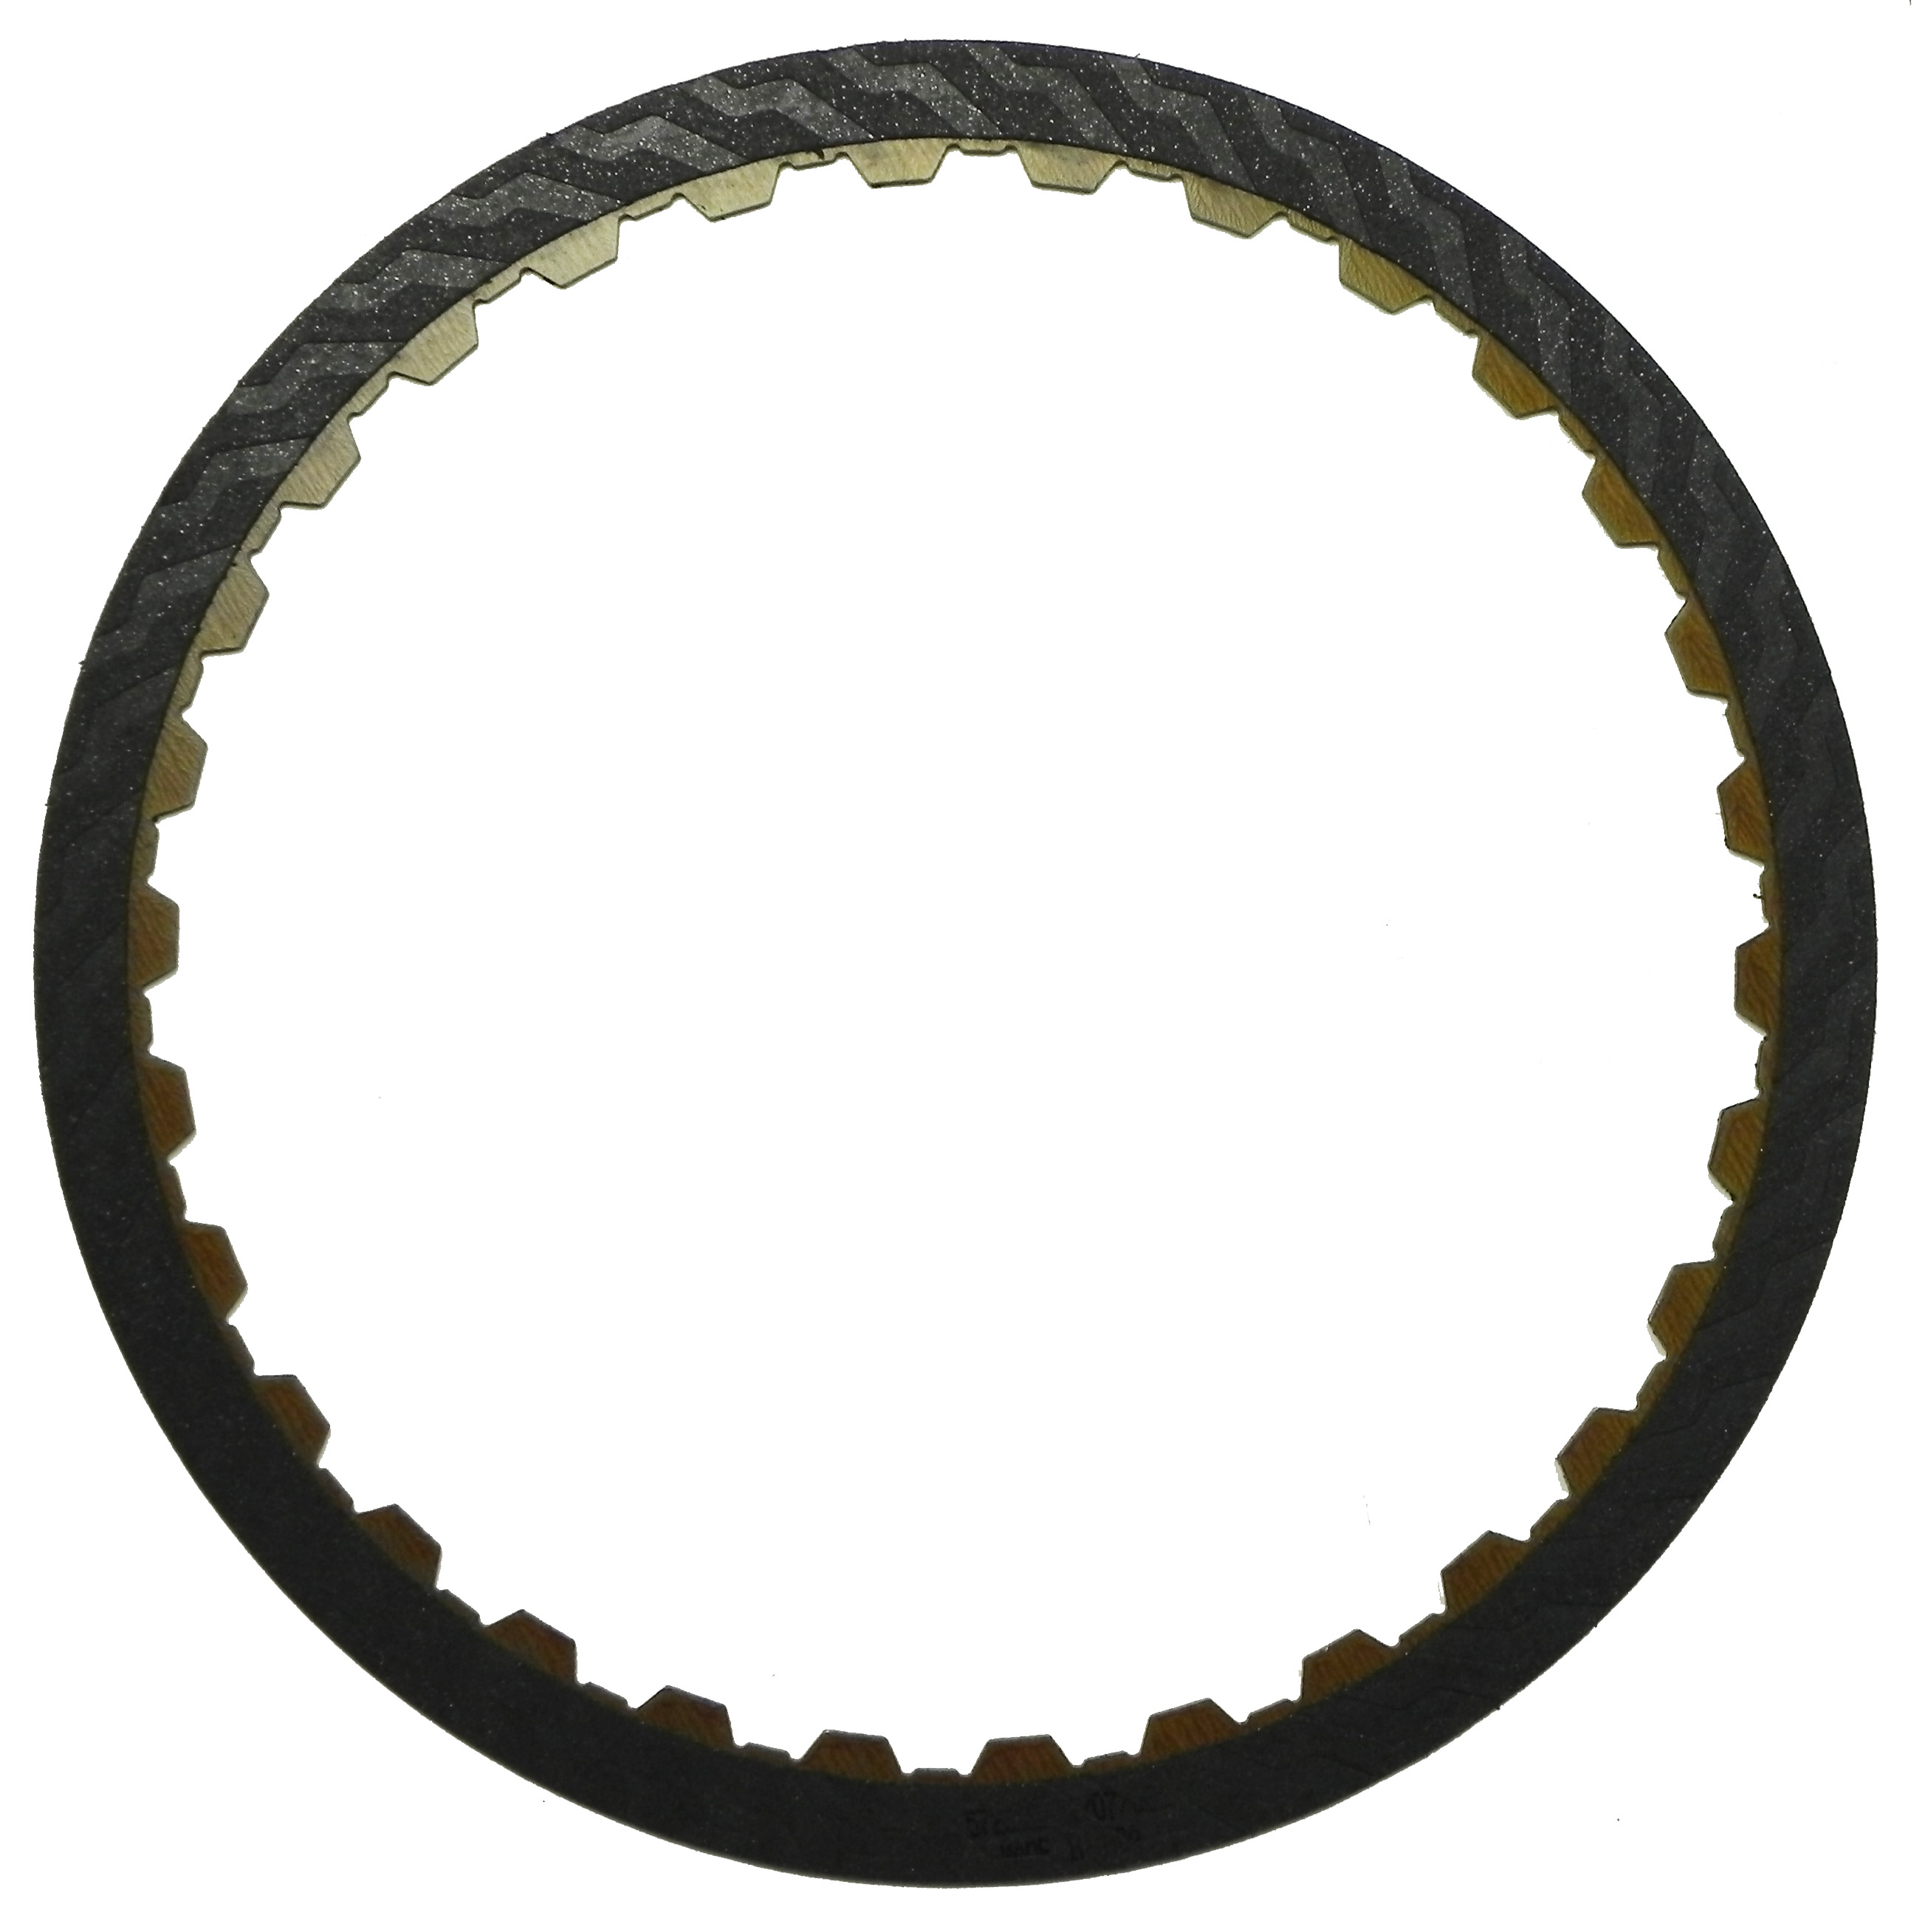 R572640 | 2002-2006 Friction Clutch Plate High Energy B1, K1 Single Sided, ID Spline High Energy